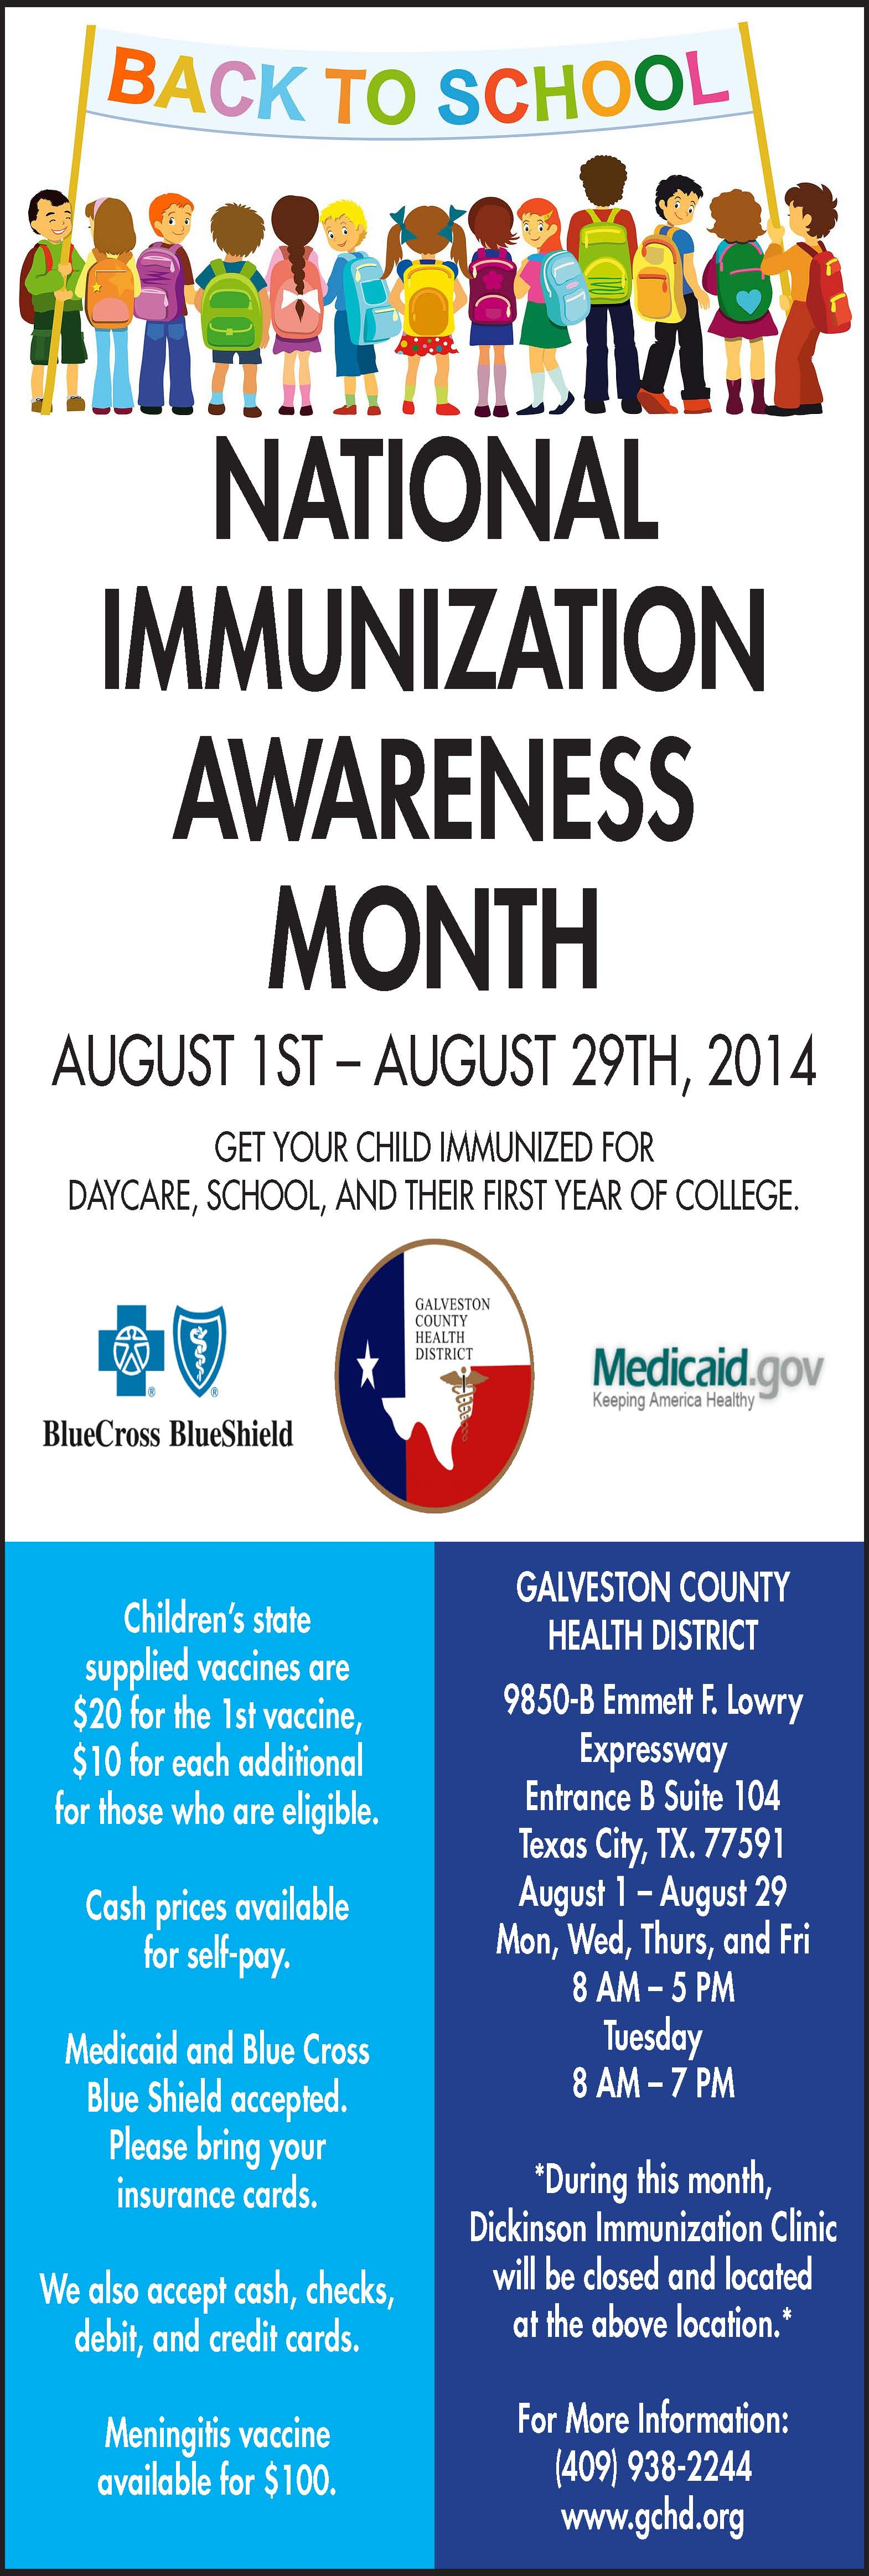 National Immunization Awareness Month 2014